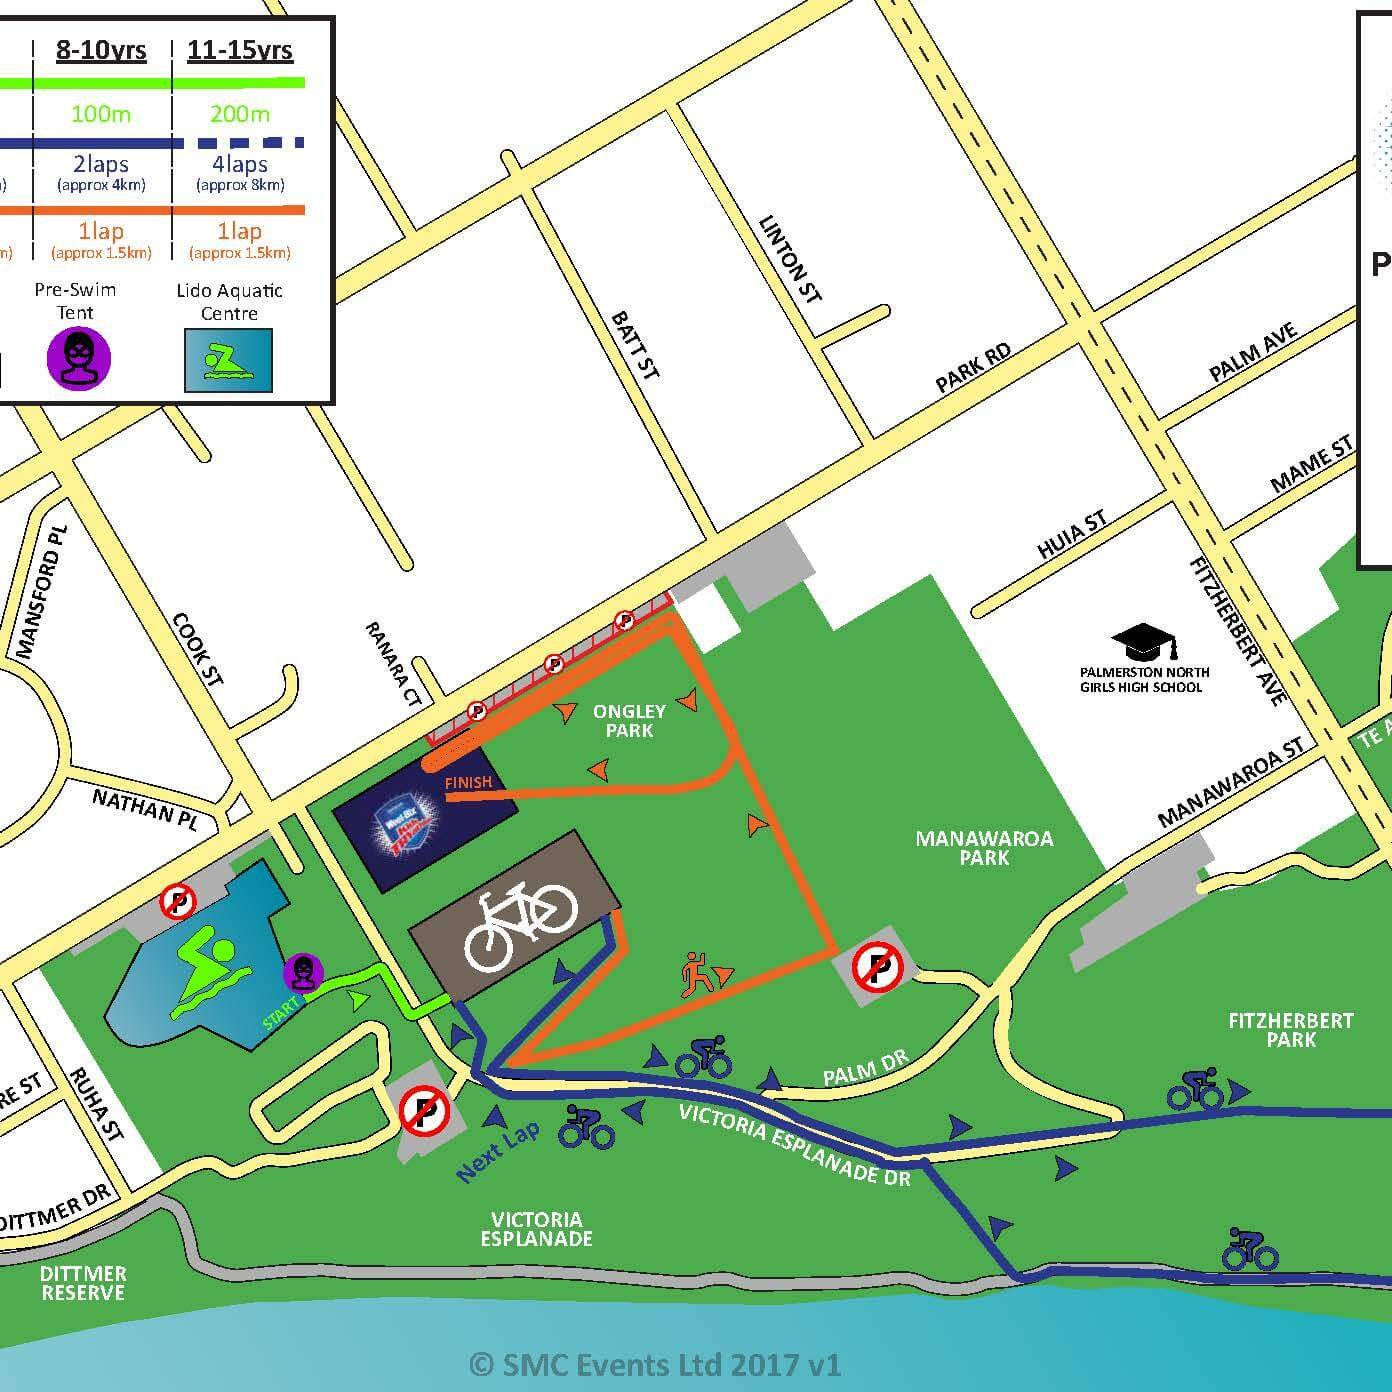 17-18 Palmerston North - Course Map v2